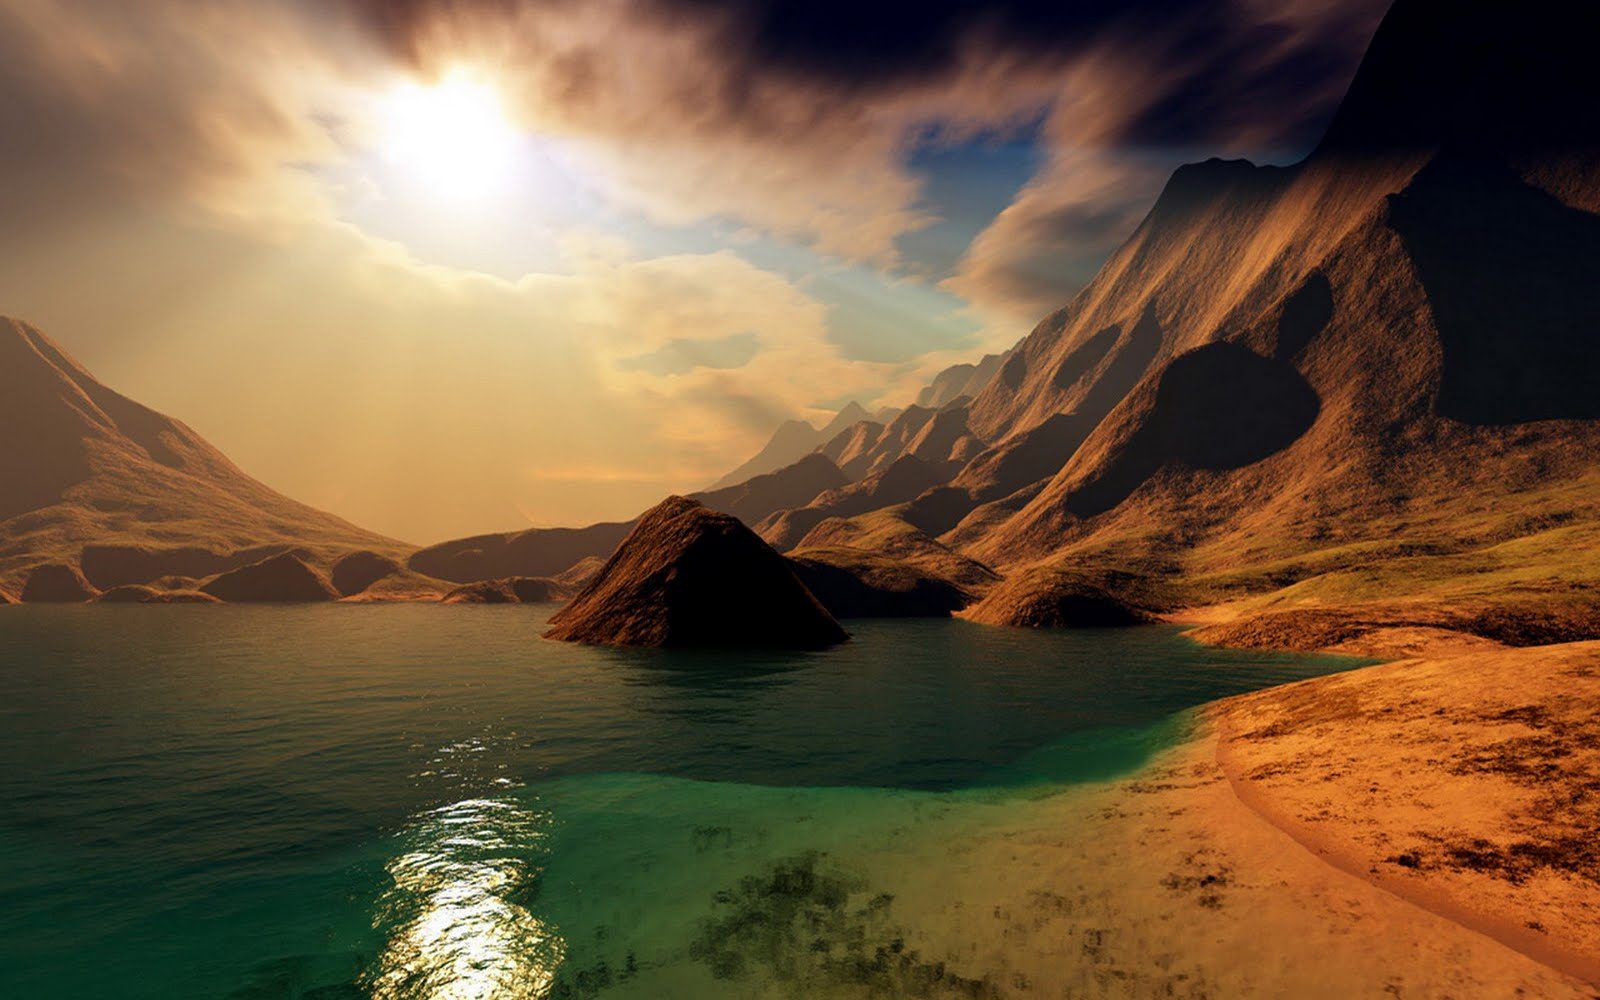 Free 3d Wallpapers For Windows Xp Wallpapers Win 7 The Best Free Desktop Wallpapers Of